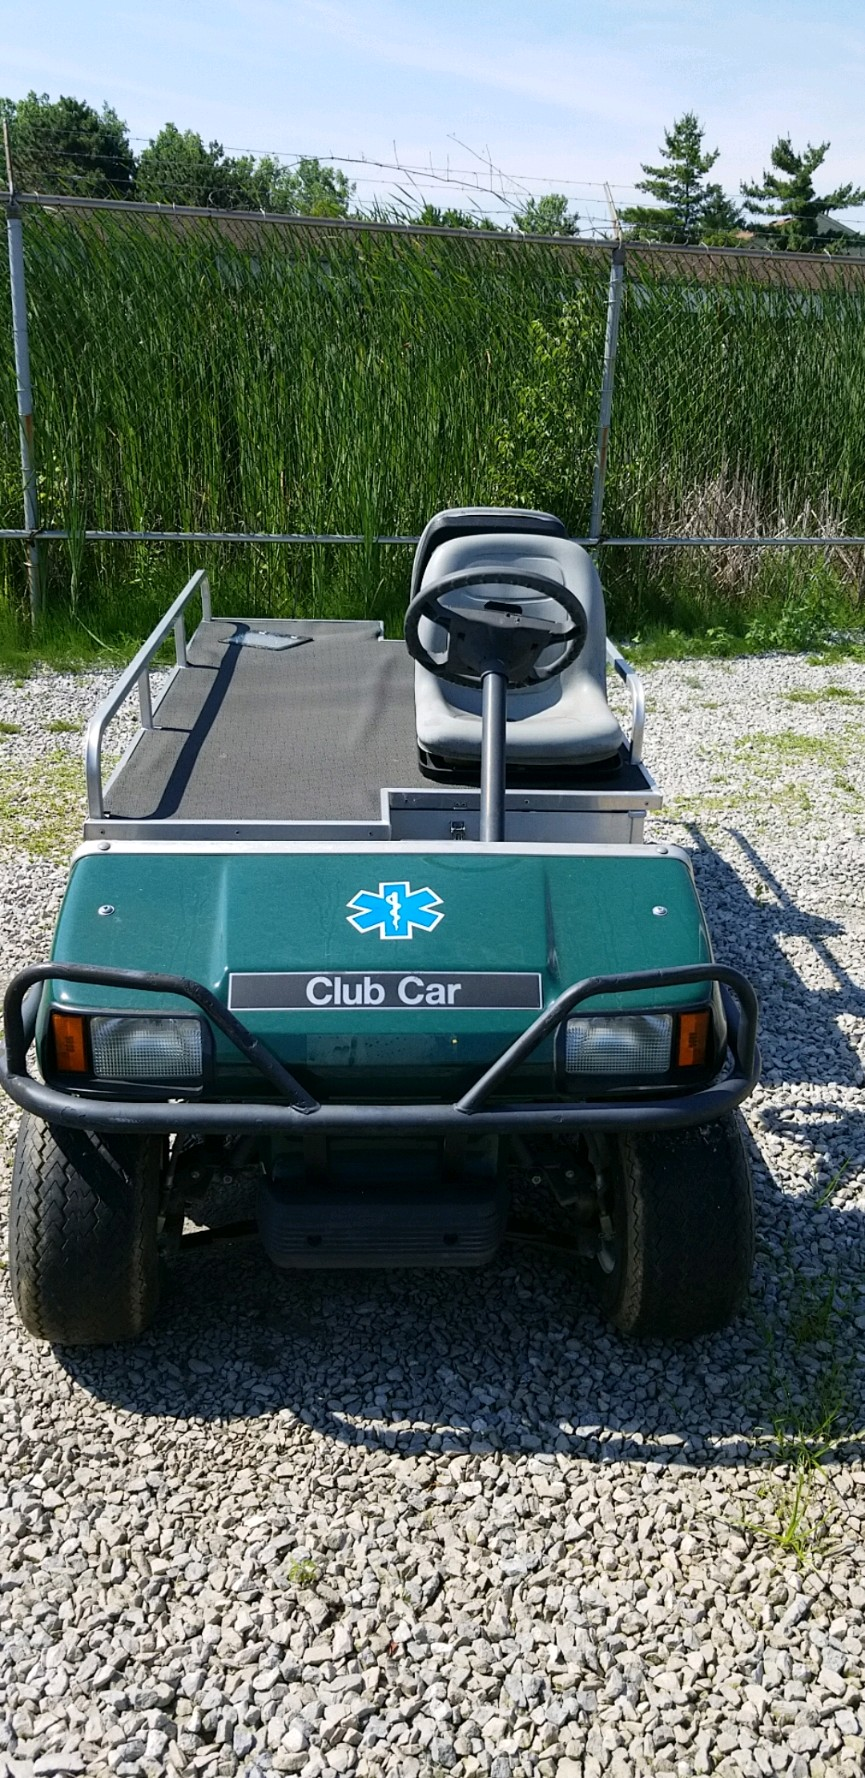 Featured Image for 2009 Club Car Turf 2 Ambulance Electric